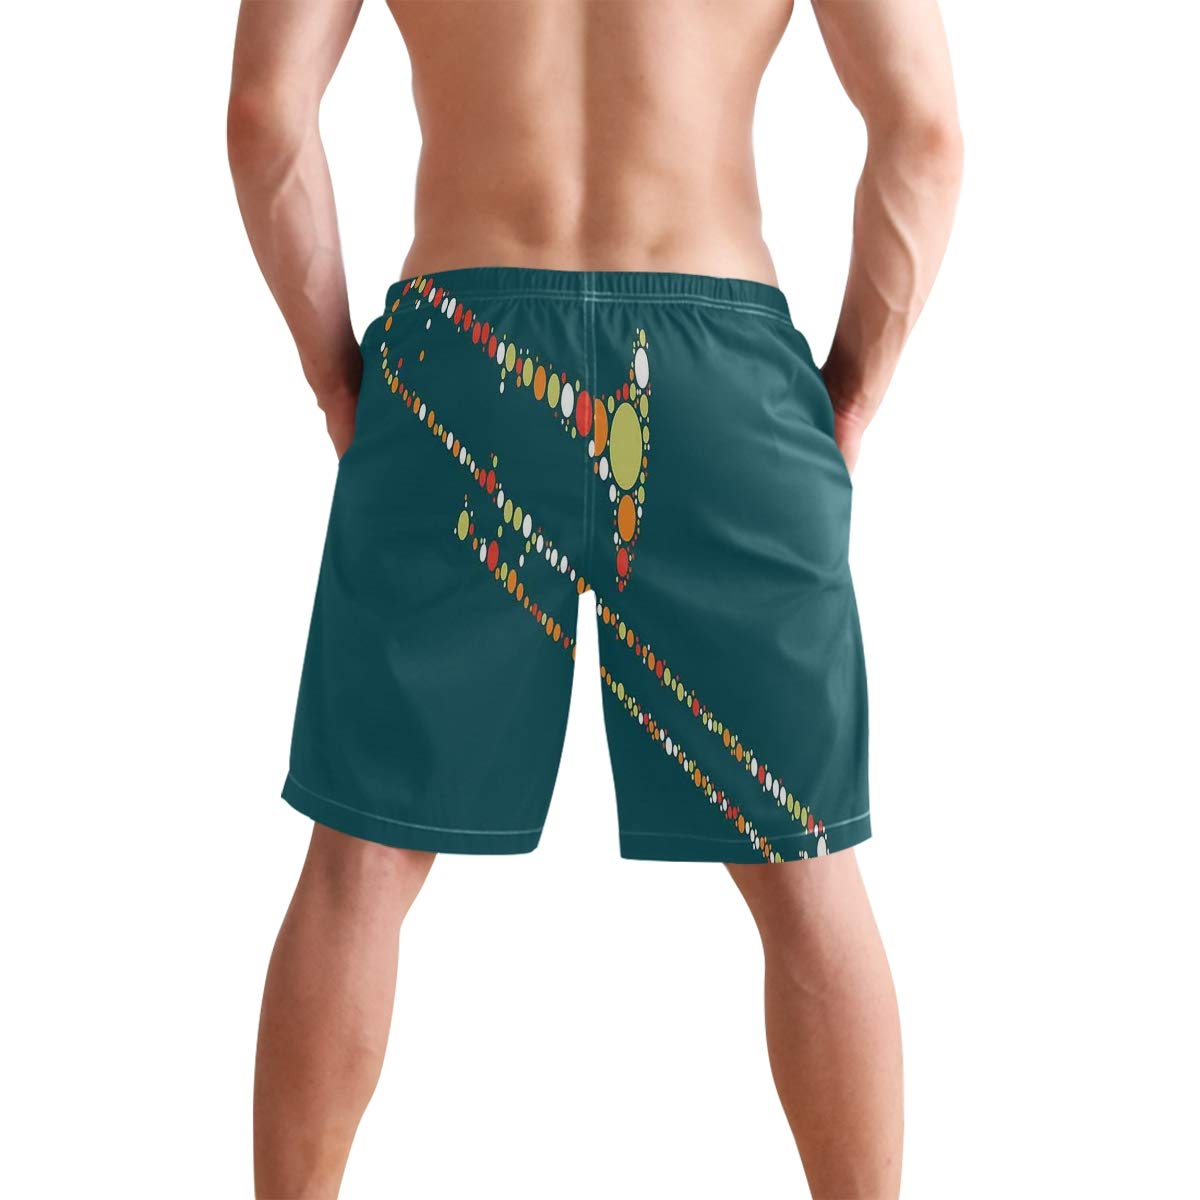 COVASA Mens Summer ShortsAbstract Portrait Design with Flower and Smoky Patter